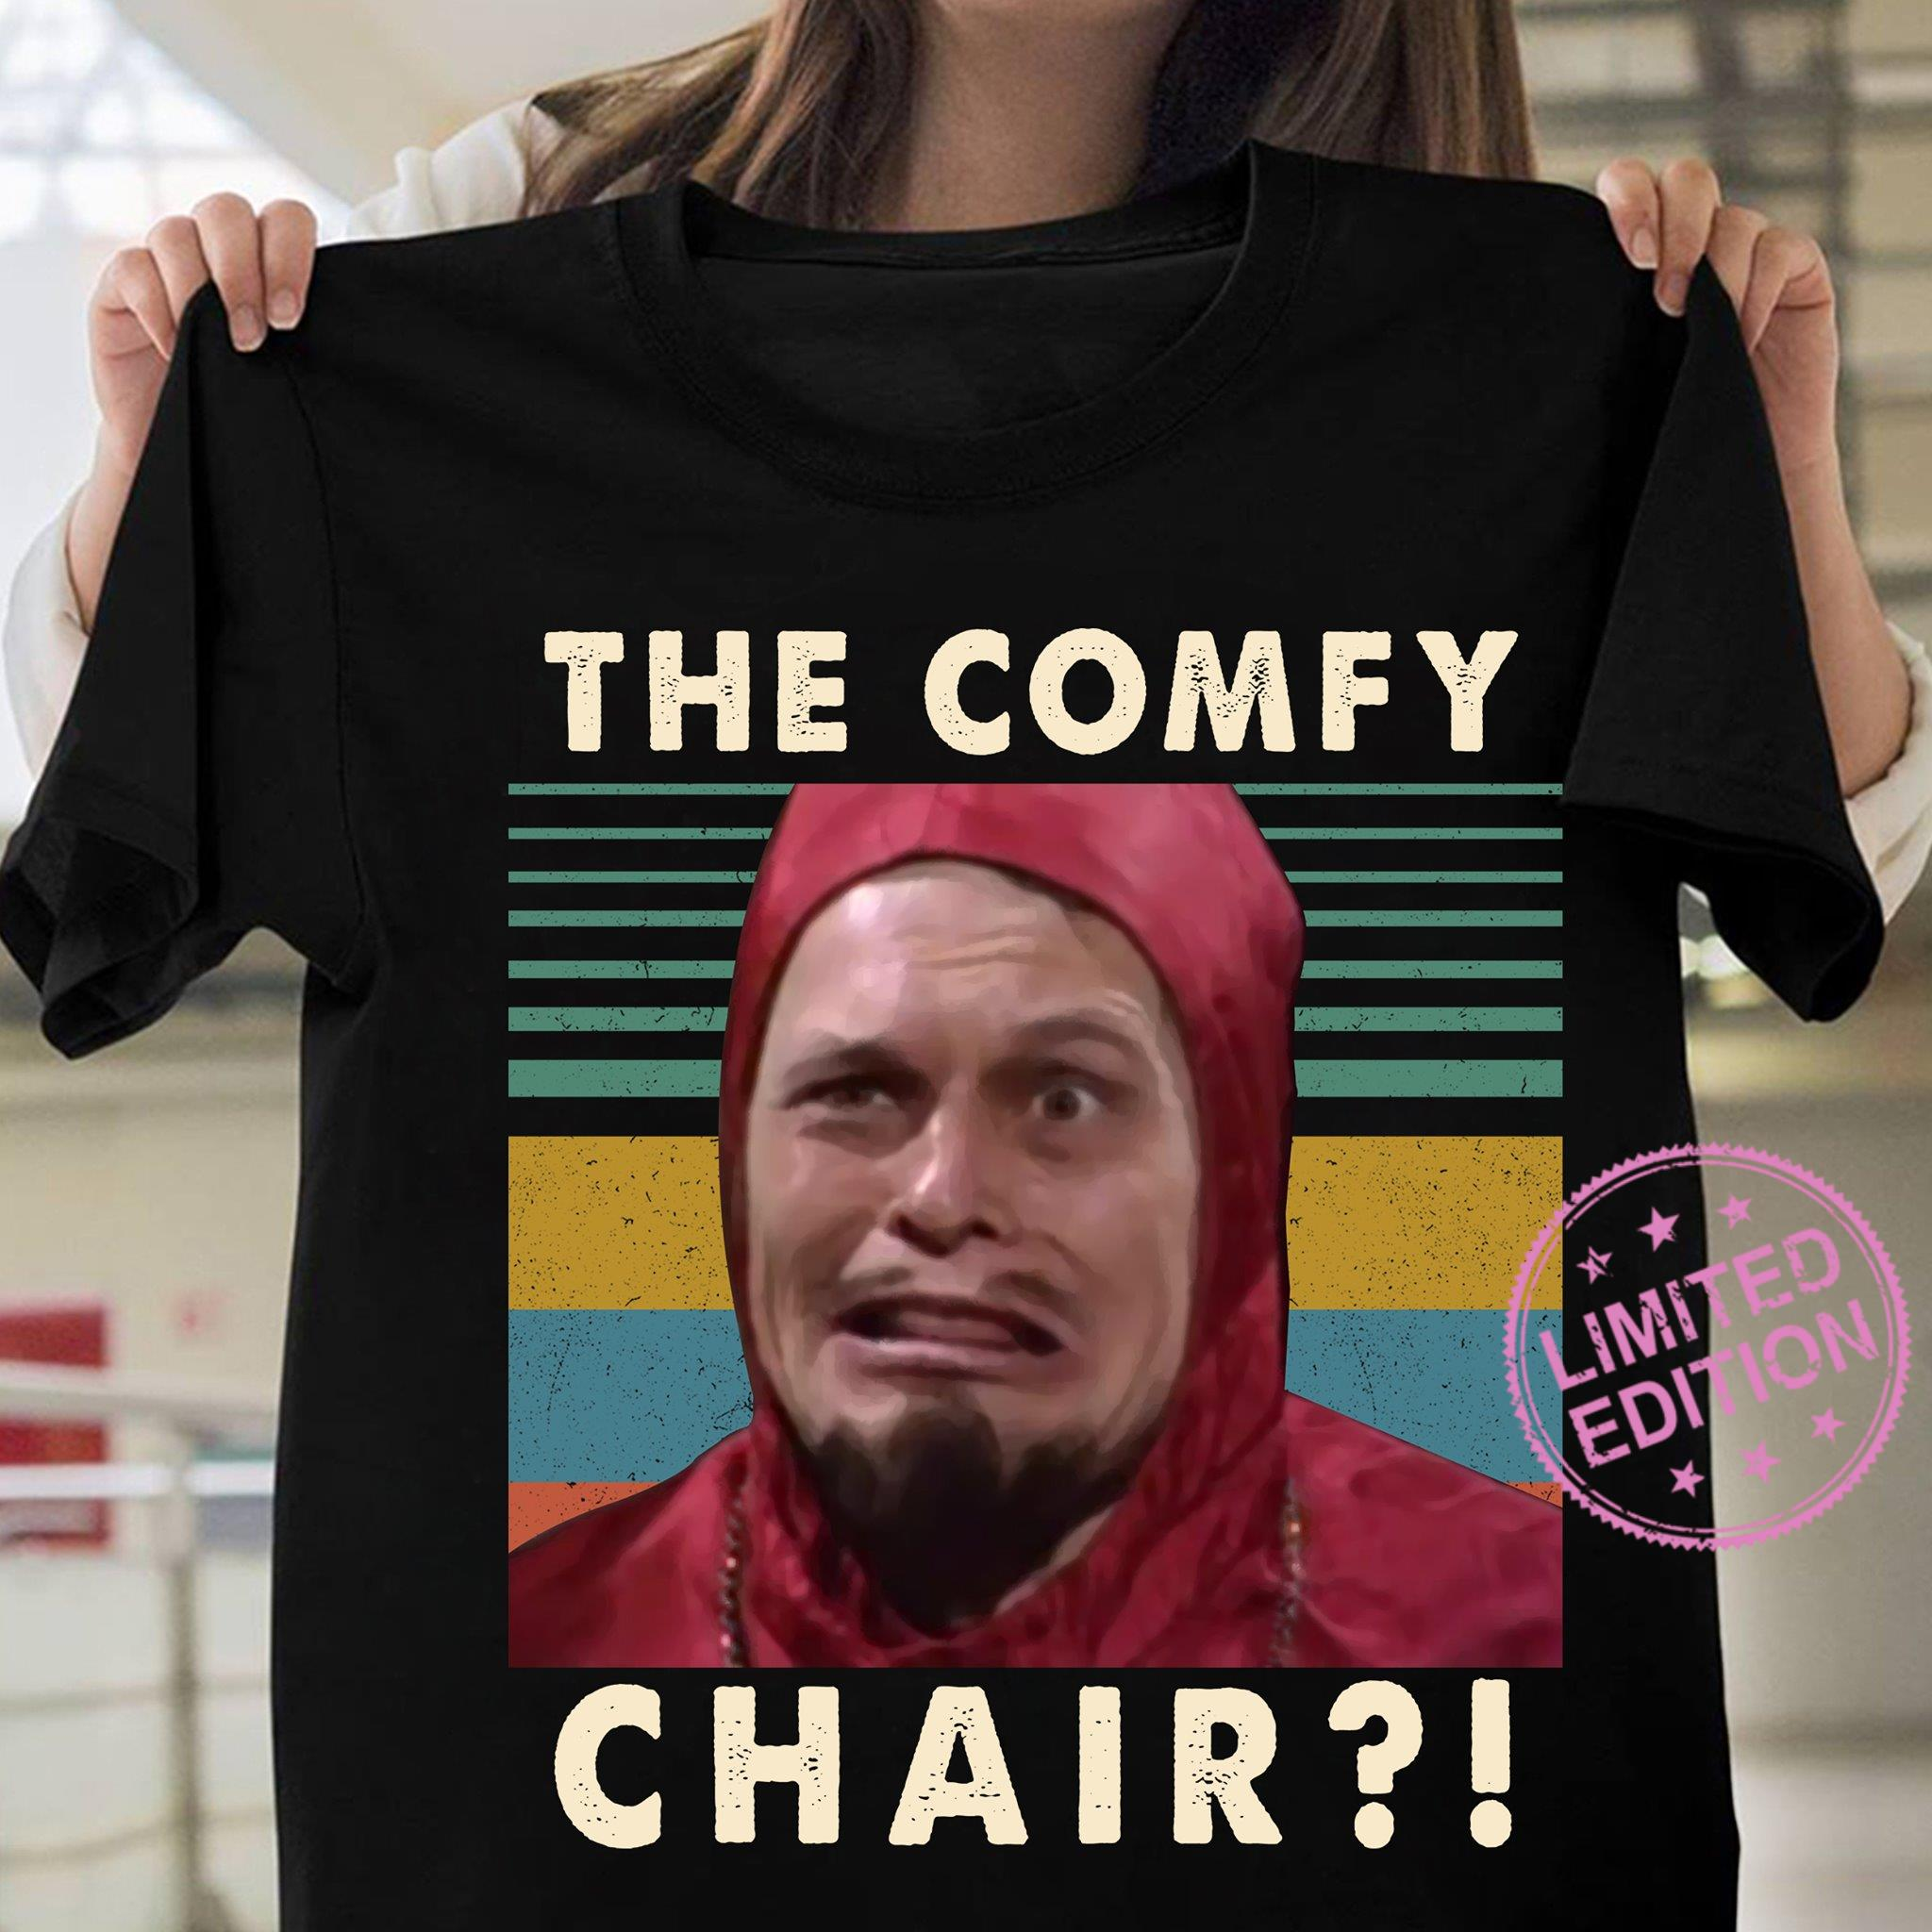 The comfy chair shirt